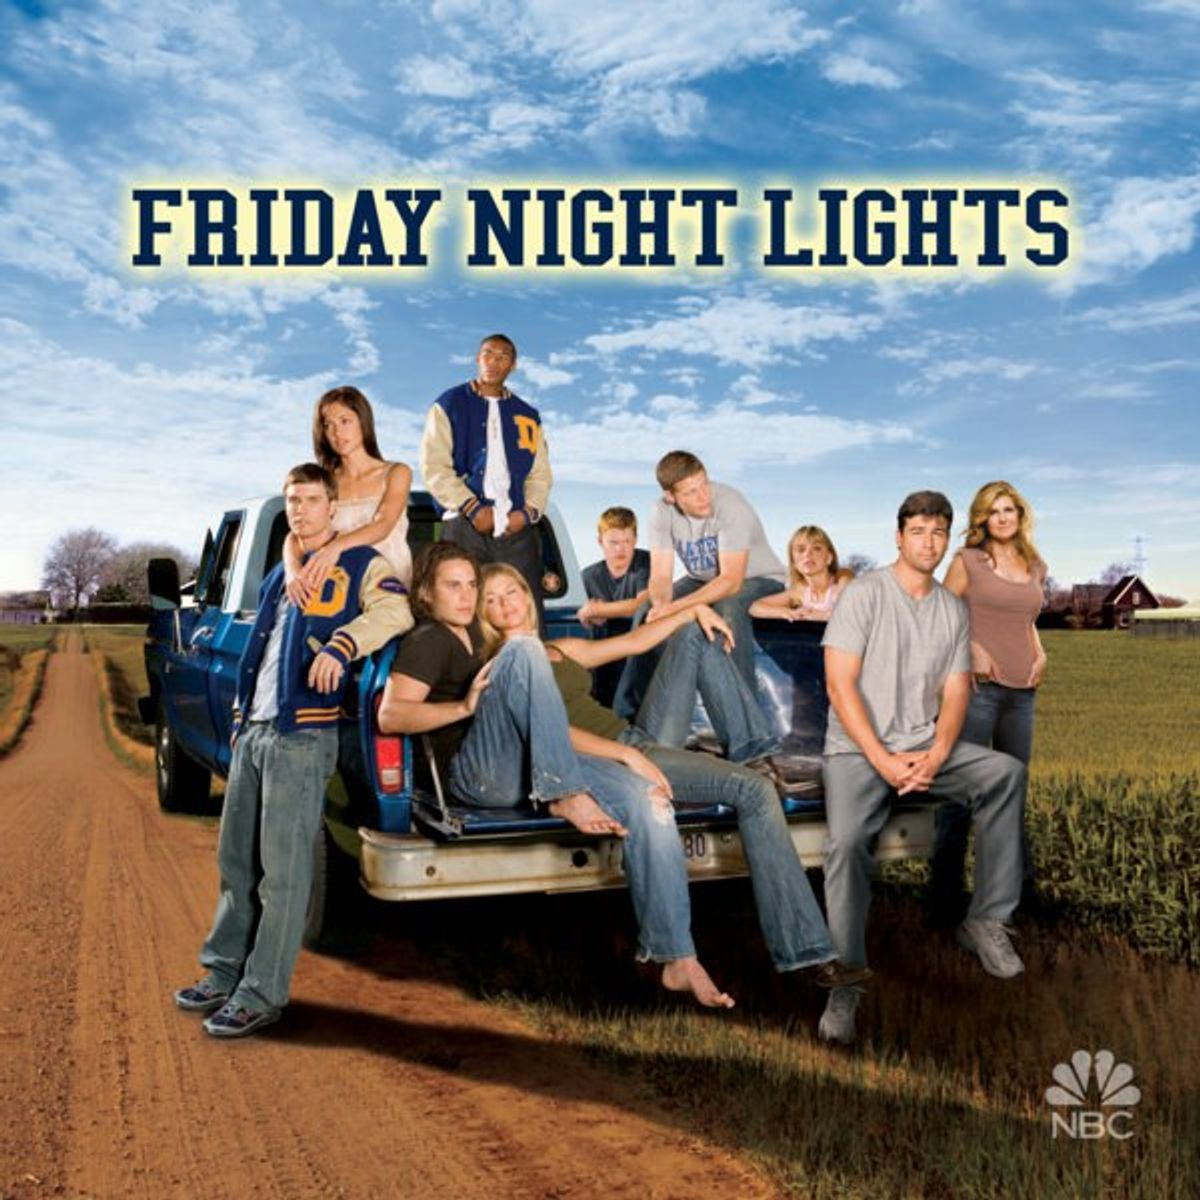 11 Lessons Friday Night Lights Taught Us